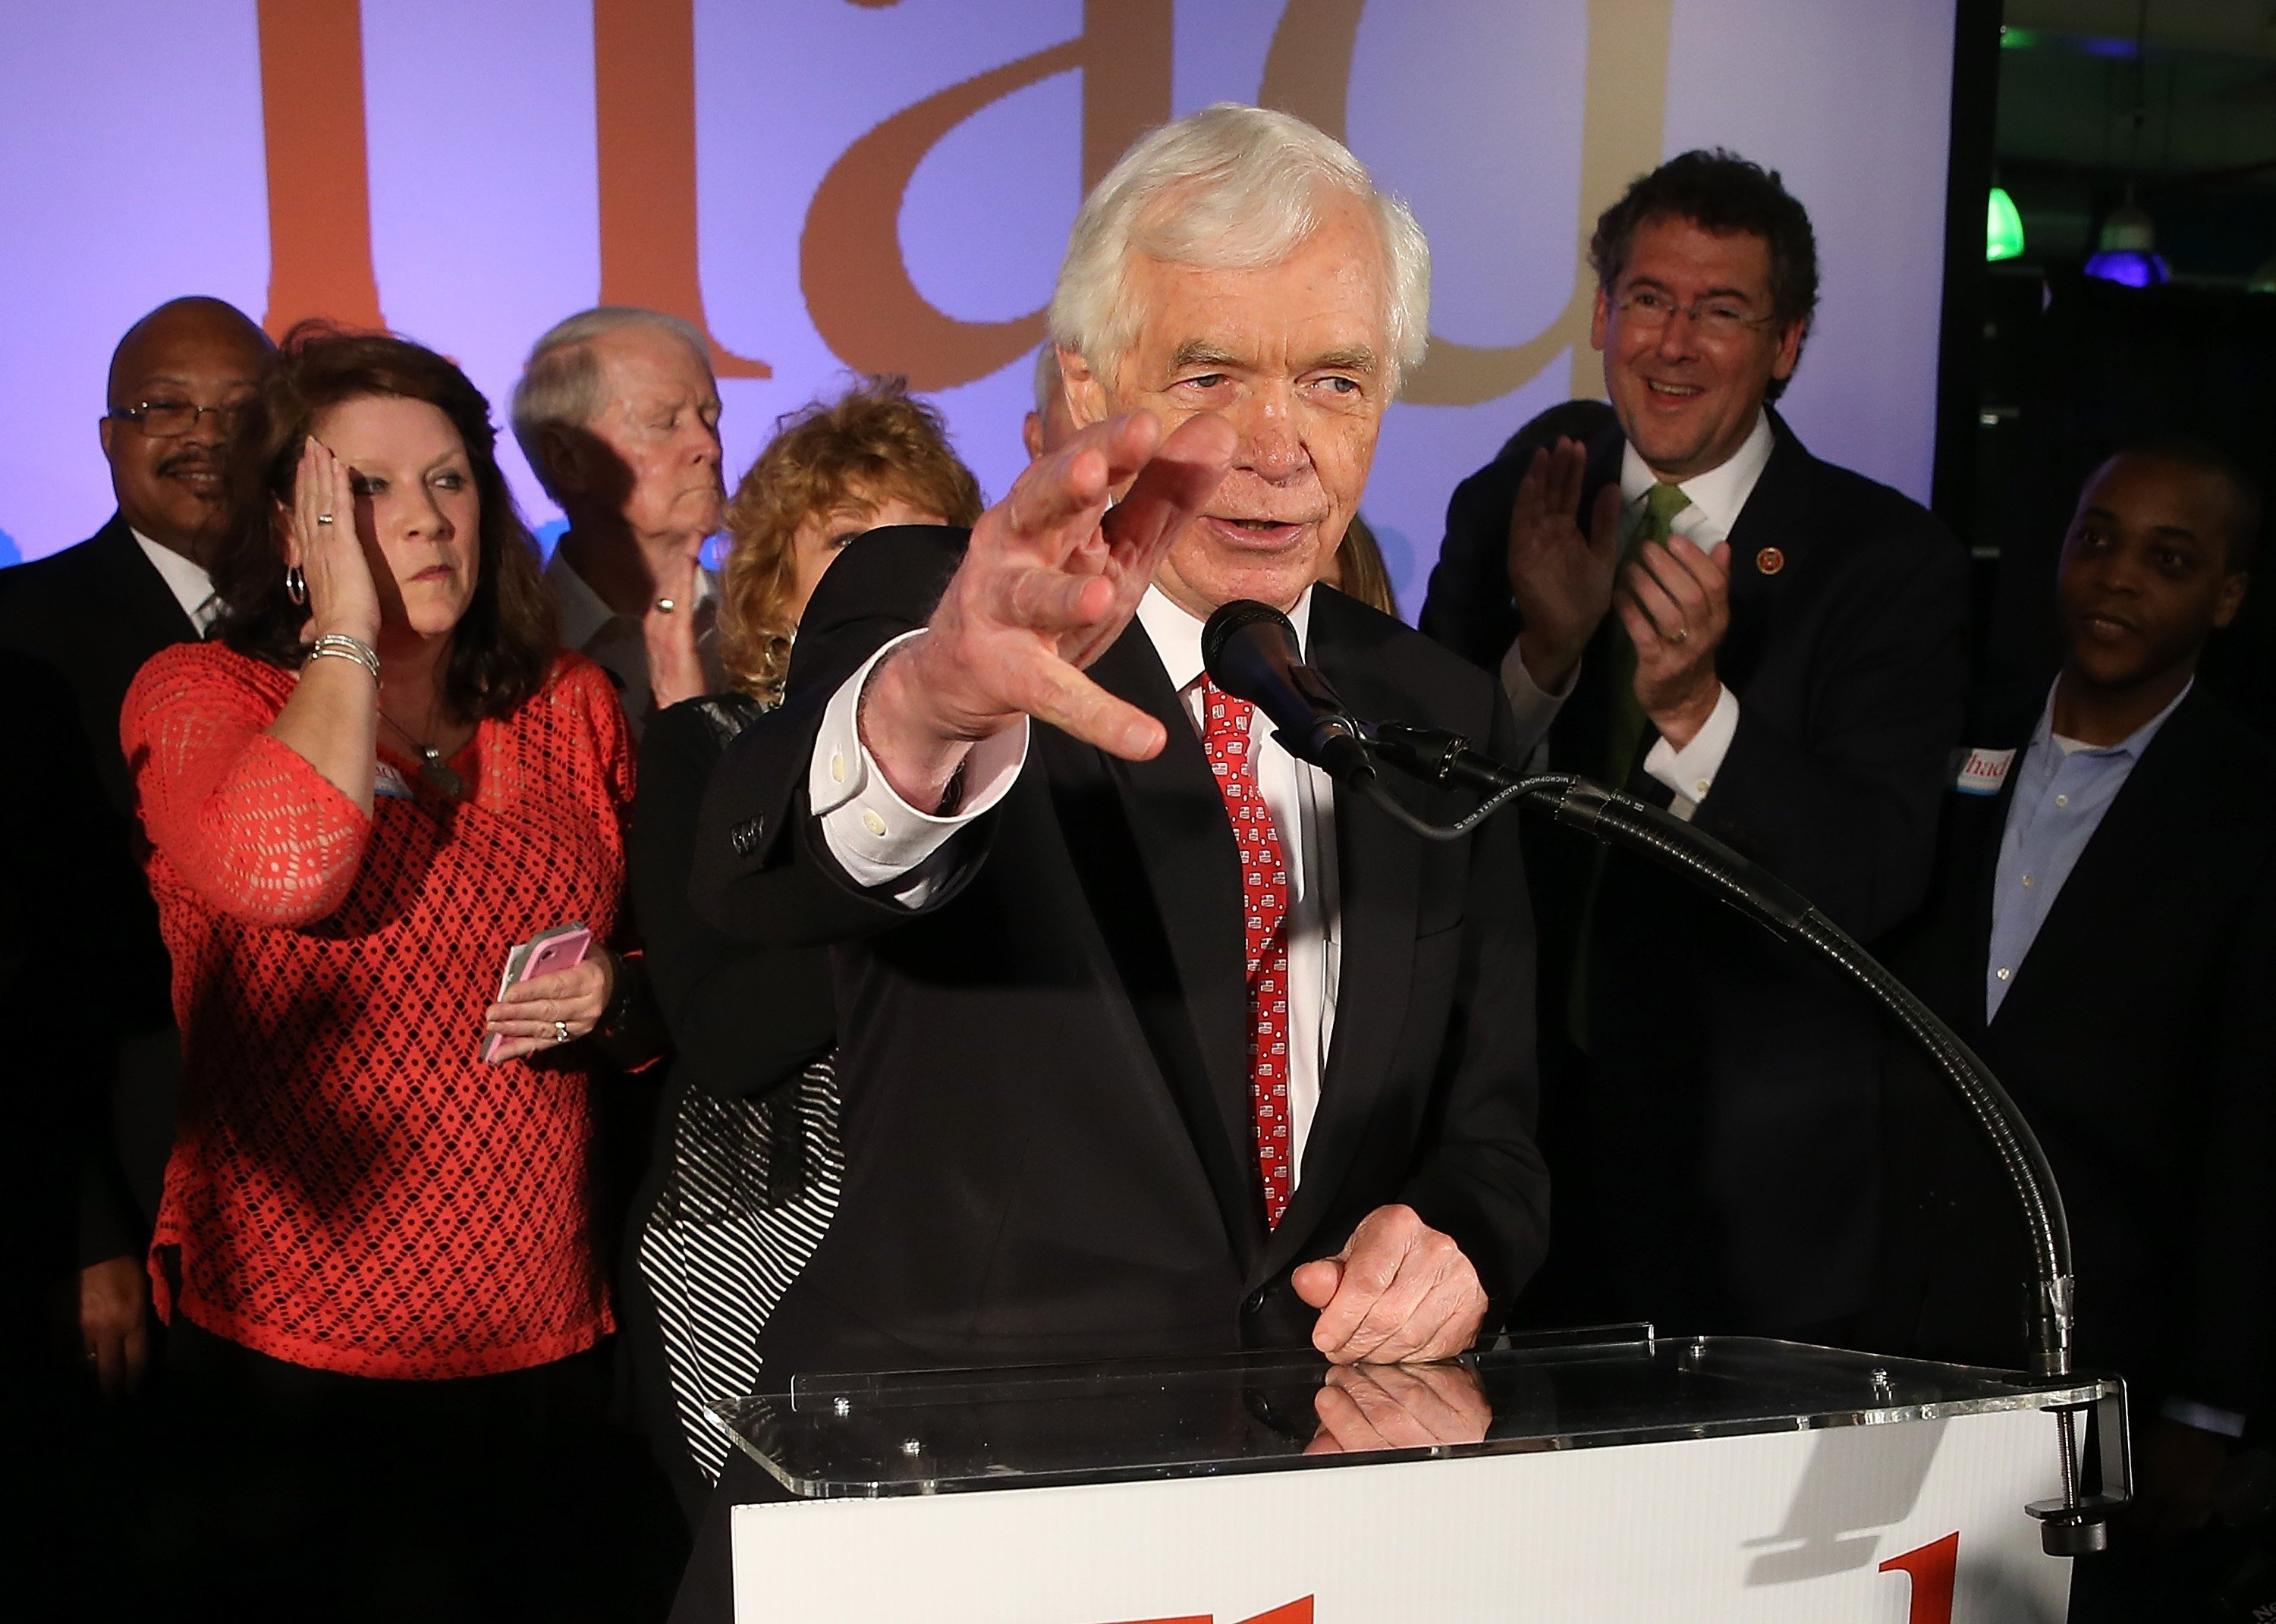 Sen. Thad Cochran Will Leave The Senate, Citing Health Problems